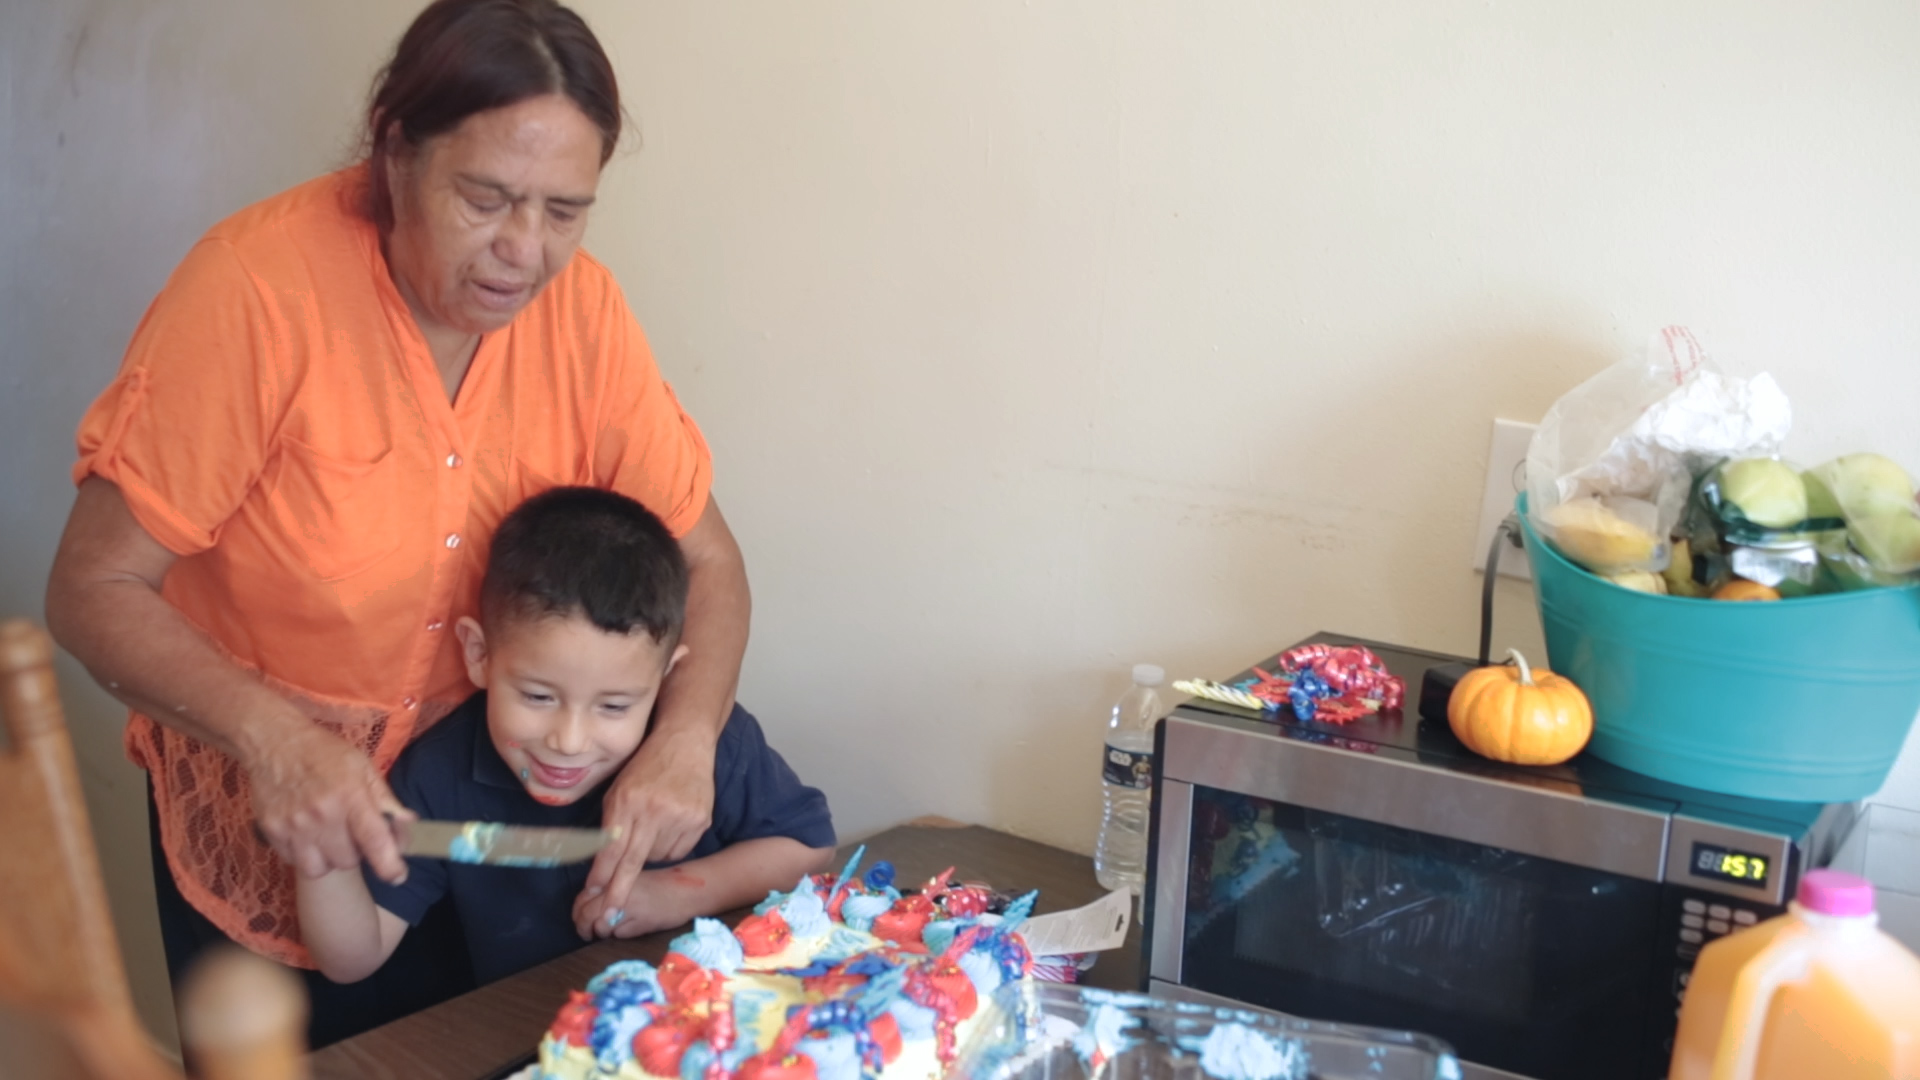 woodwalk-commercial-video-communigift-los angeles-birthday-party-boy-grandmother-cake